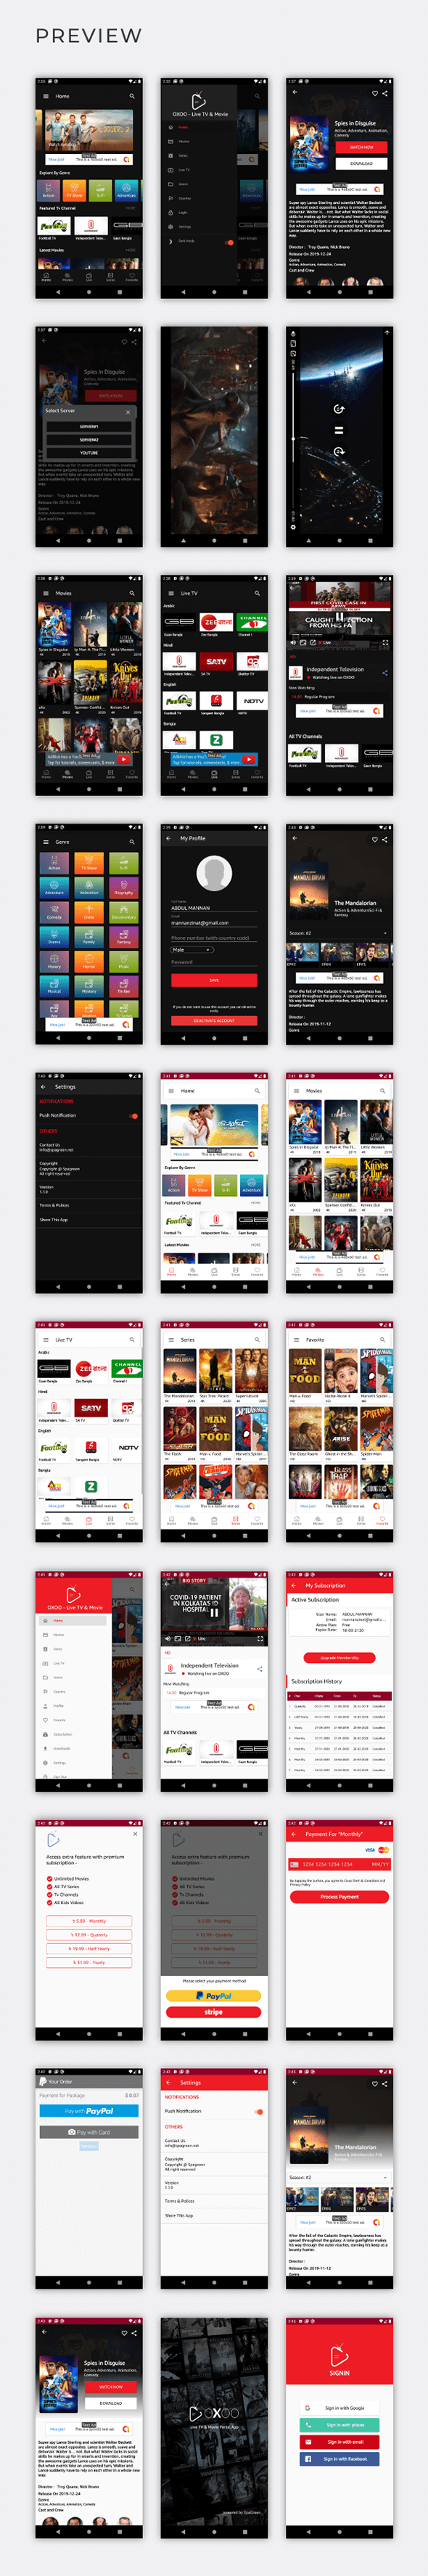 OXOO - Android Live TV & Movie Portal App with Subscription System - 4